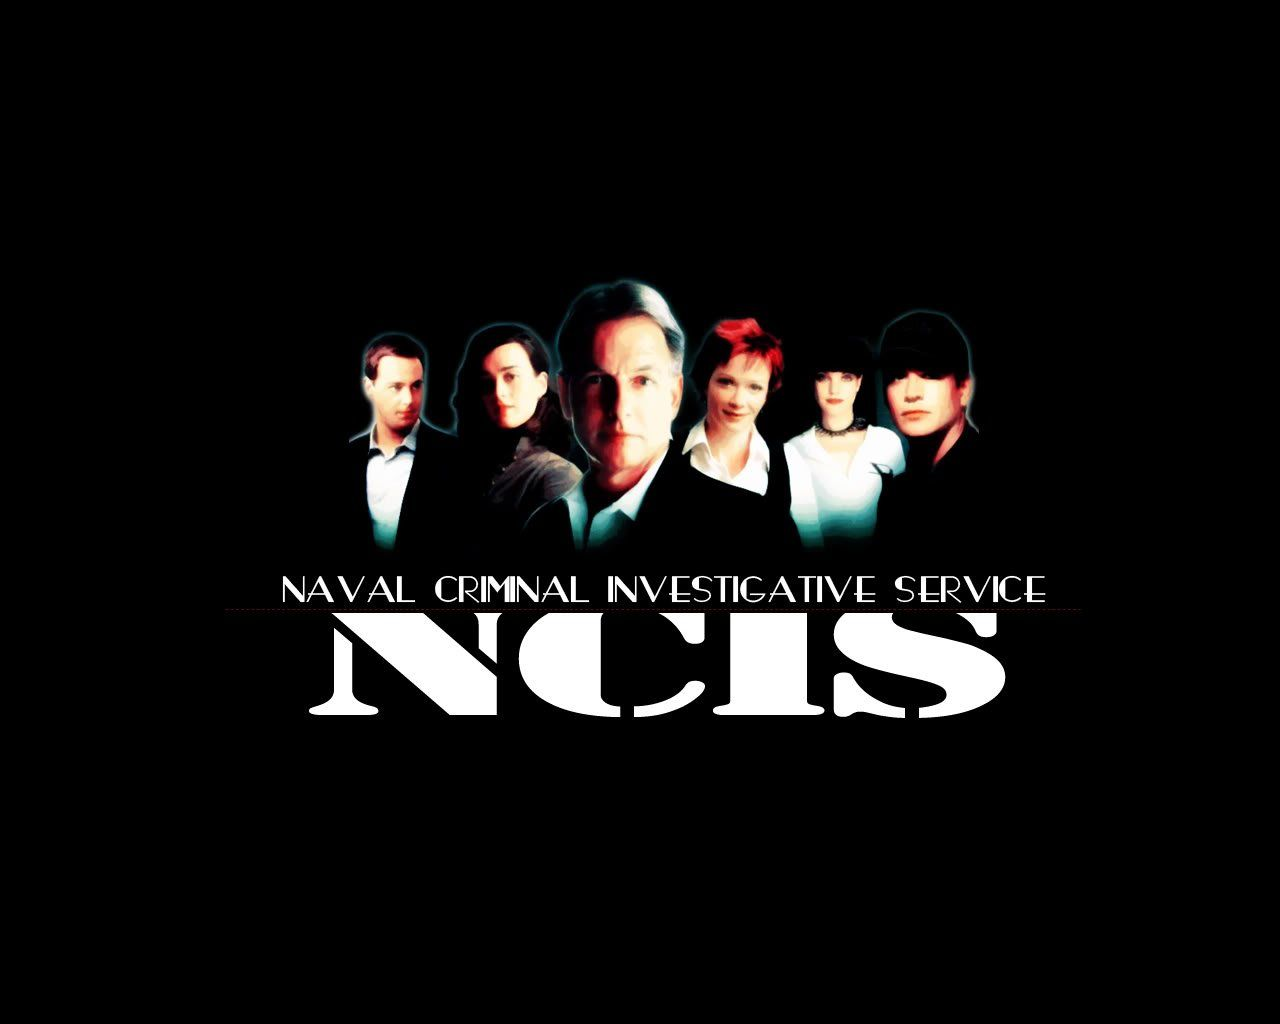 1280x1024 NCIS Wallpaper - Wallpapers Browse